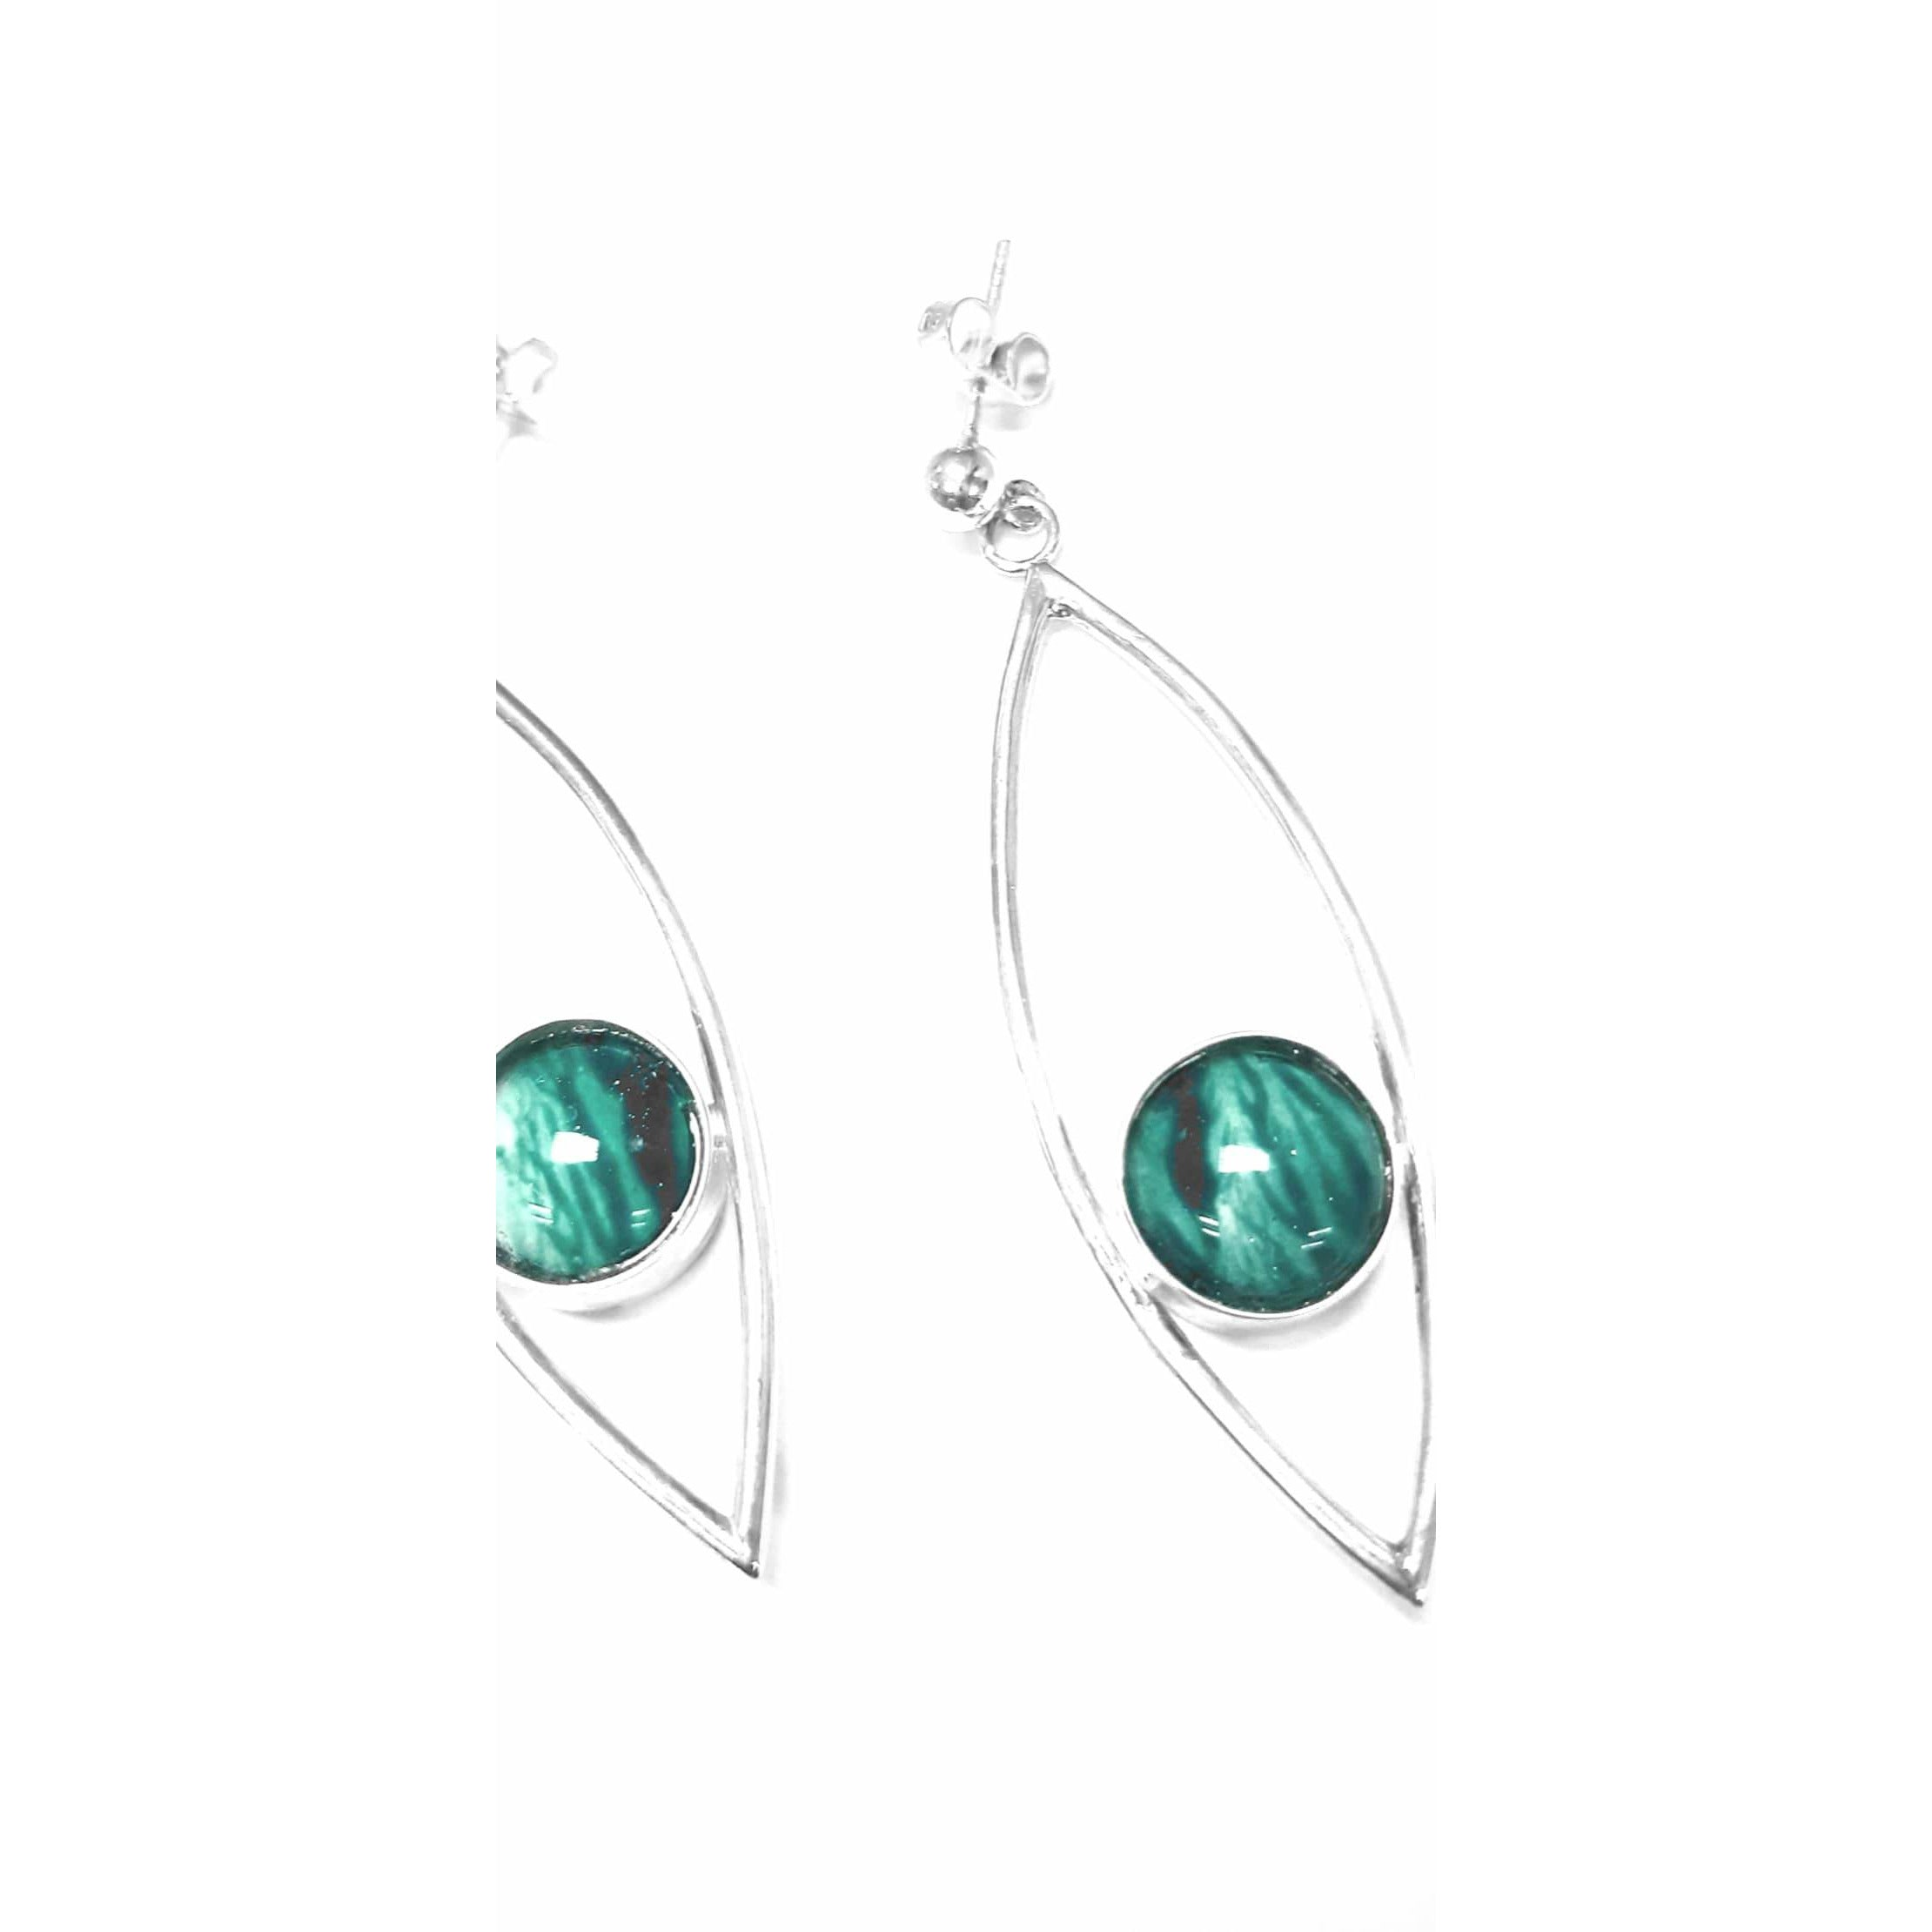 Fish Eye drop earrings